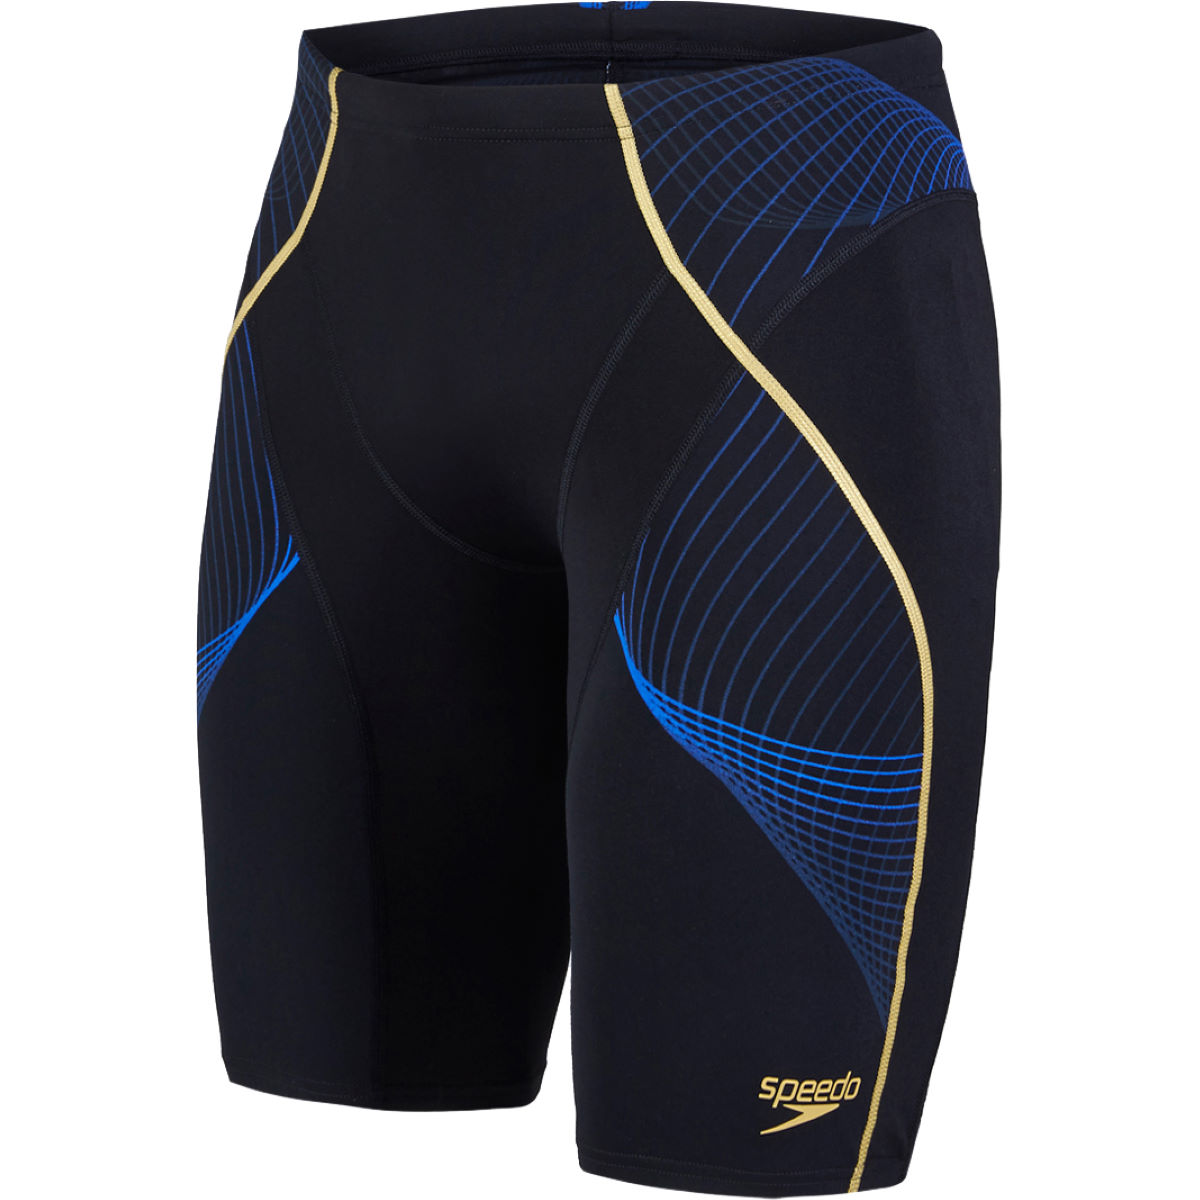 Jammer Speedo Speedo Fit Pinnacle (AH16) - 32 Noir/Bleu Maillots de bain Adulte